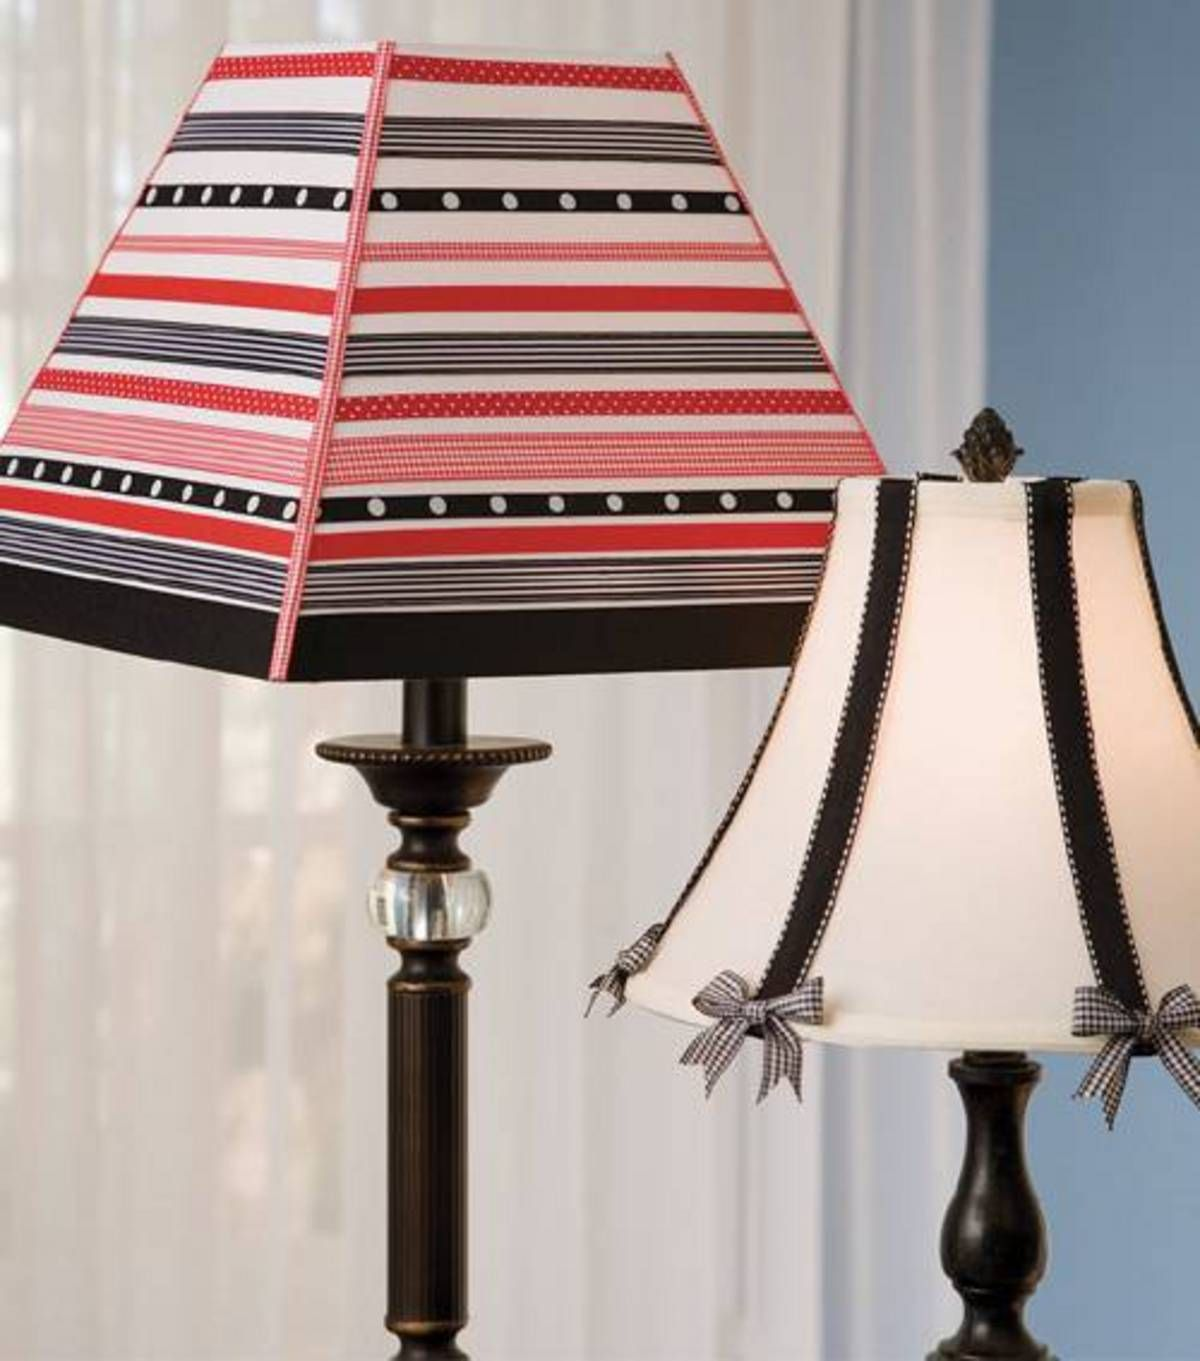 Ribbon embellished lampshades at joann decor pinterest ribbon embellished lampshades at joann mozeypictures Choice Image